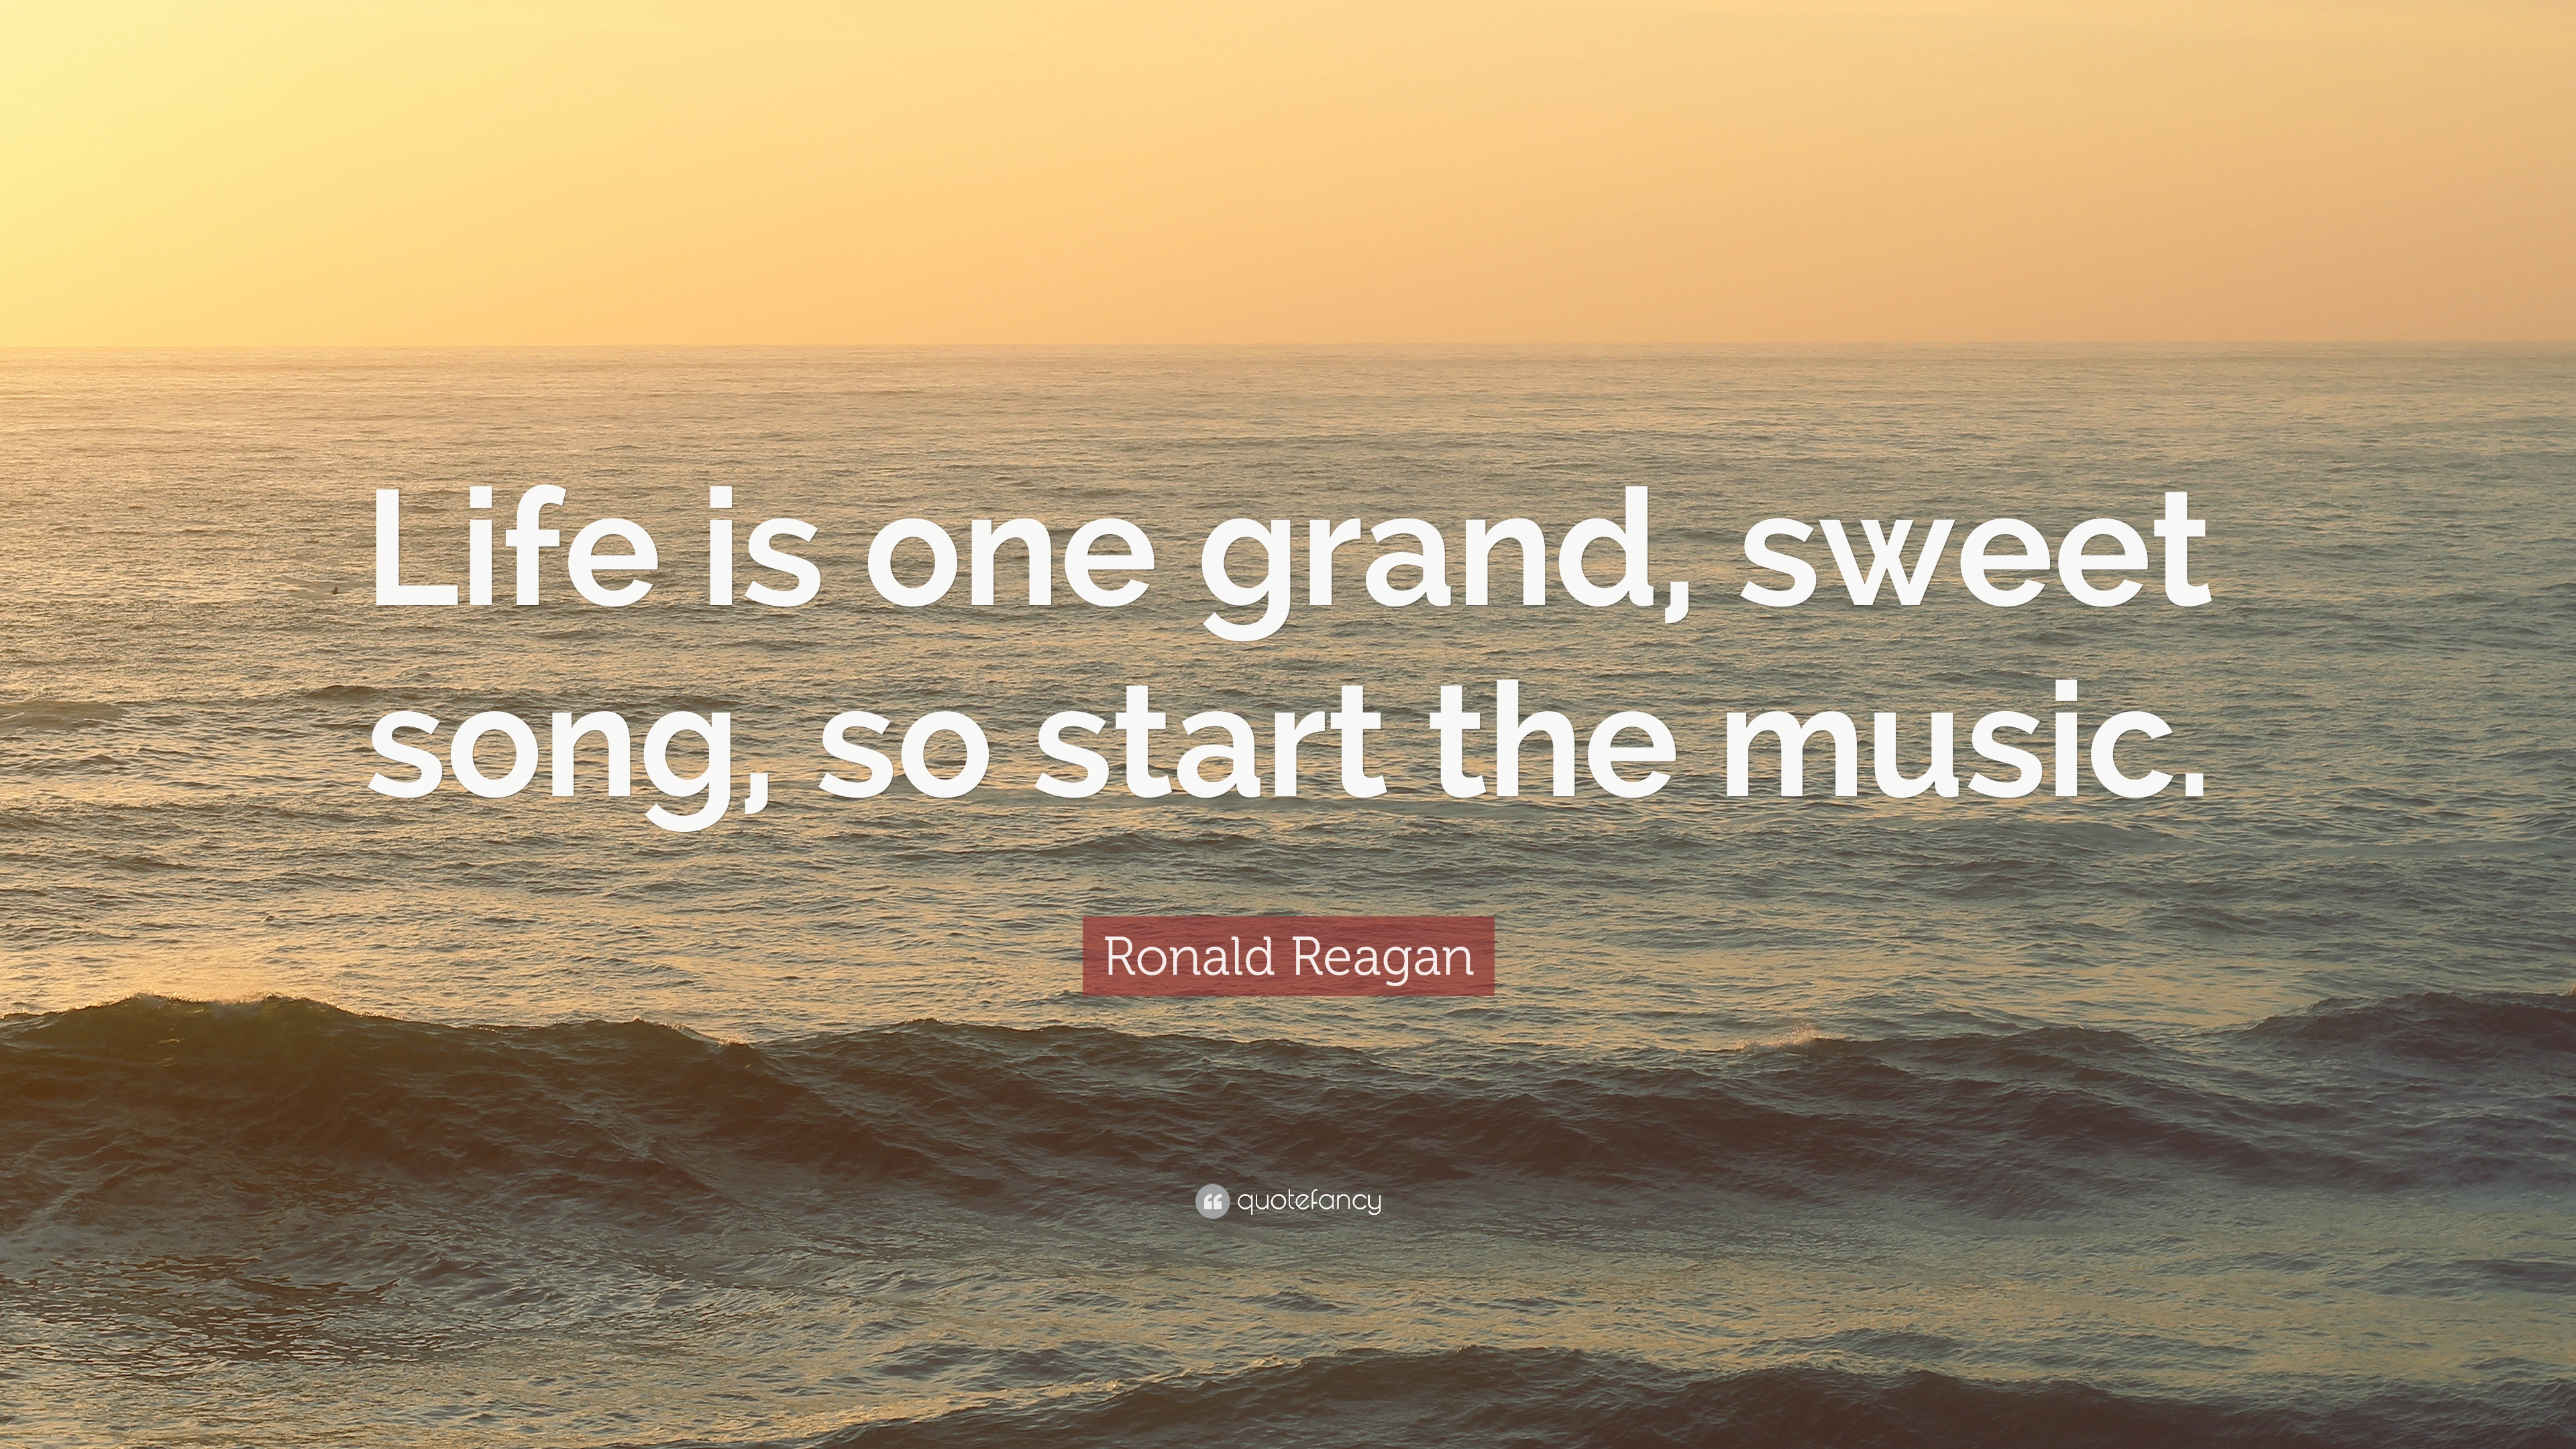 Ronald Reagan Quote: U201cLife Is One Grand, Sweet Song, So Start The